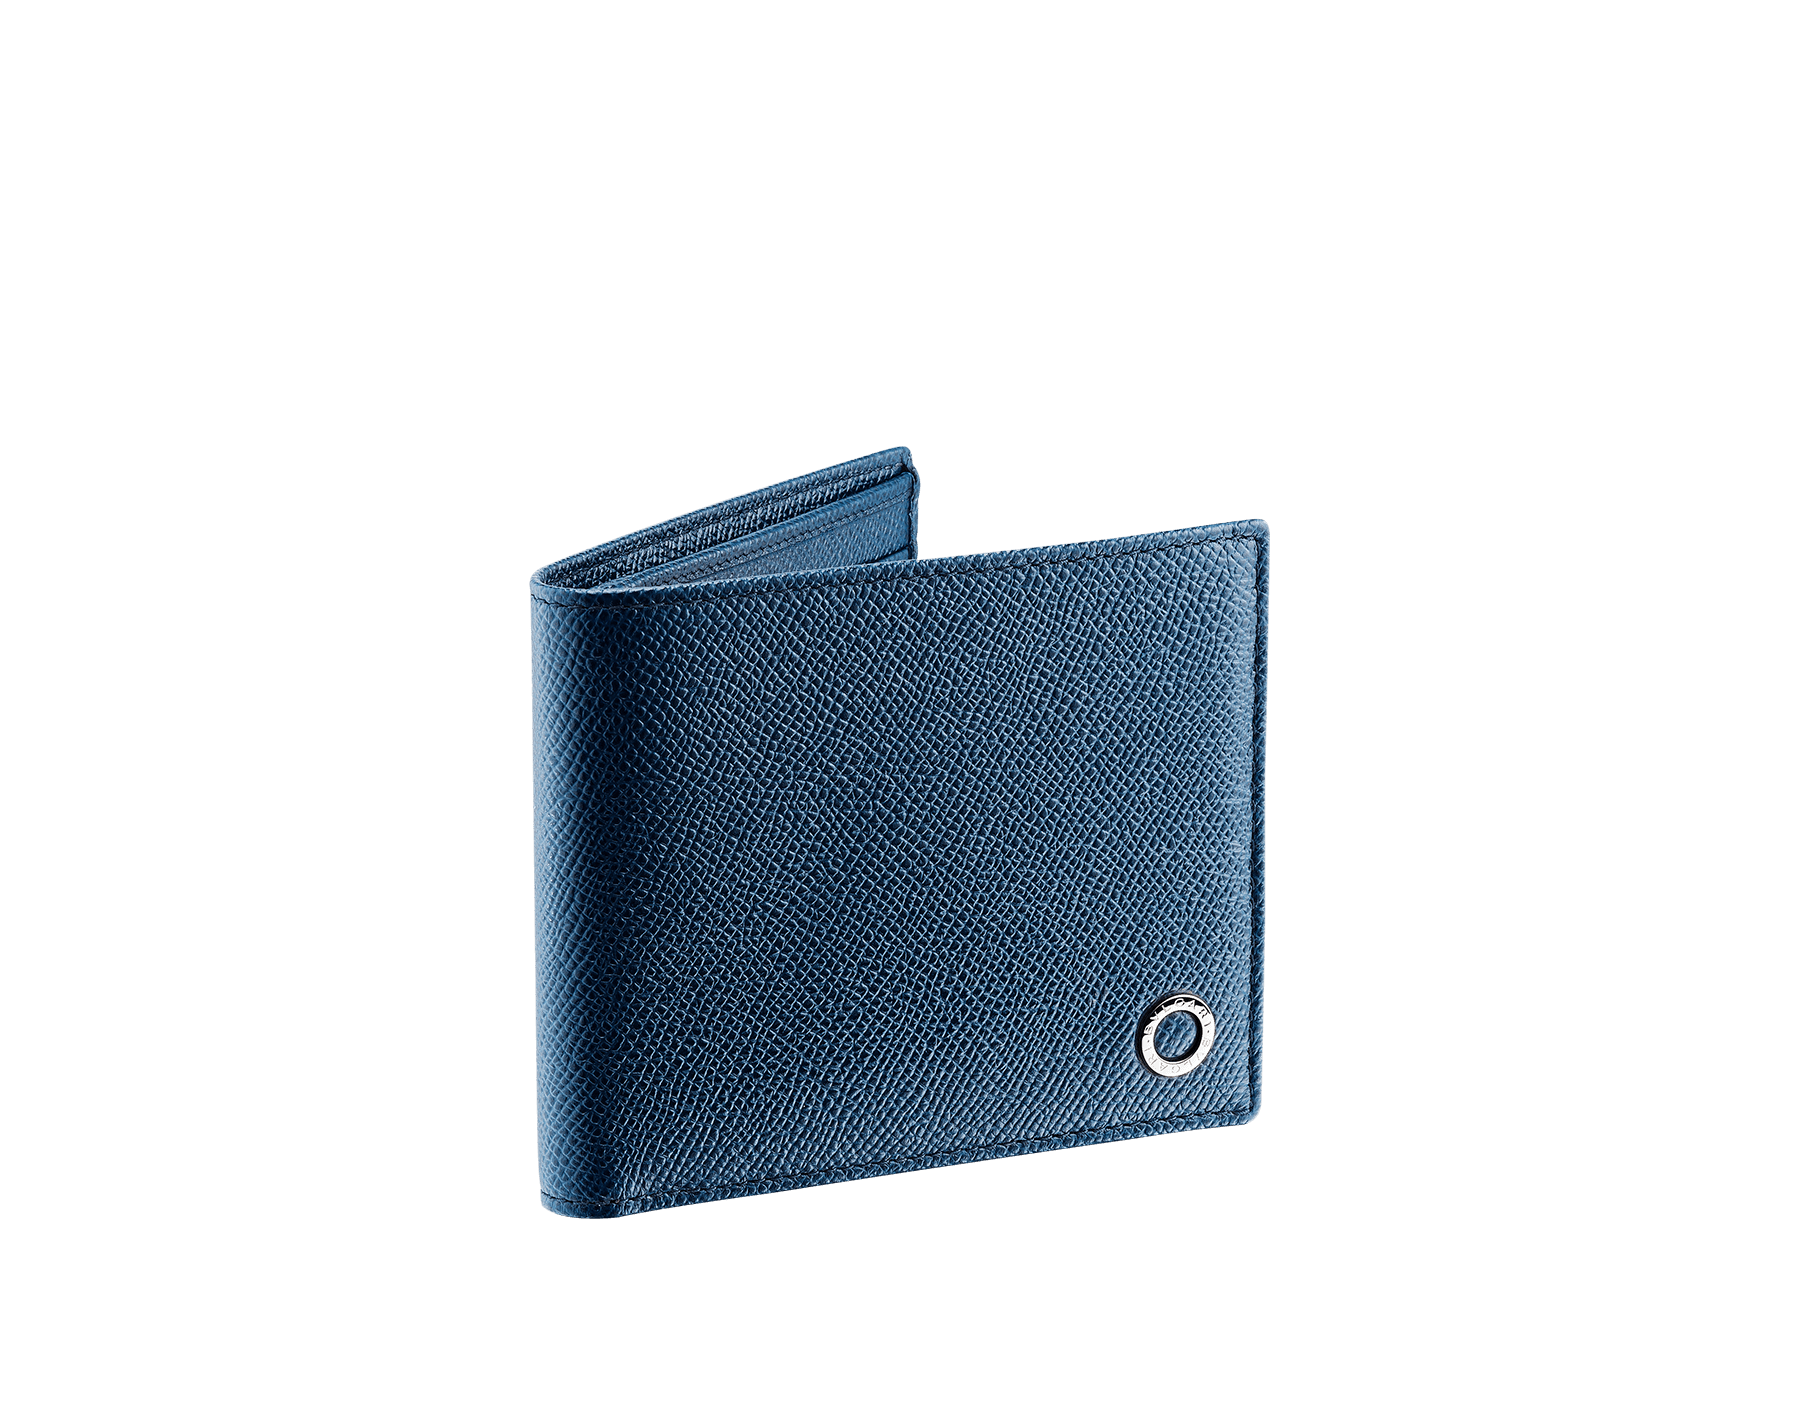 Wallet hipster for men in denim sapphire grain calf leather with brass palladium plated hardware featuring the BVLGARI BVLGARI motif. Eight credit card slots, two bill compartments and four inside compartments. 39320 image 1